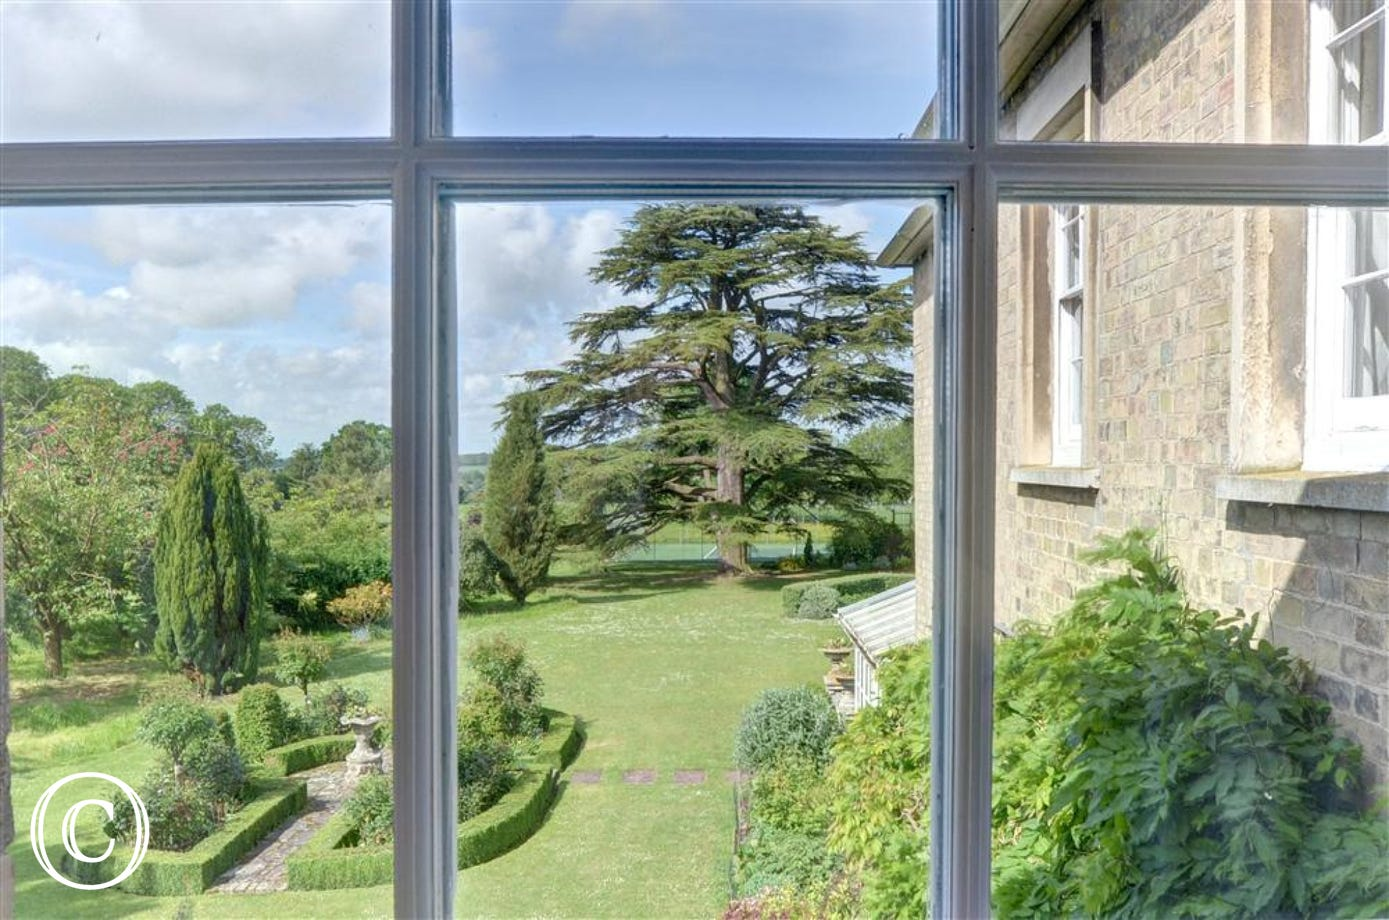 Enjoy the view of the gardens from this bedroom window.